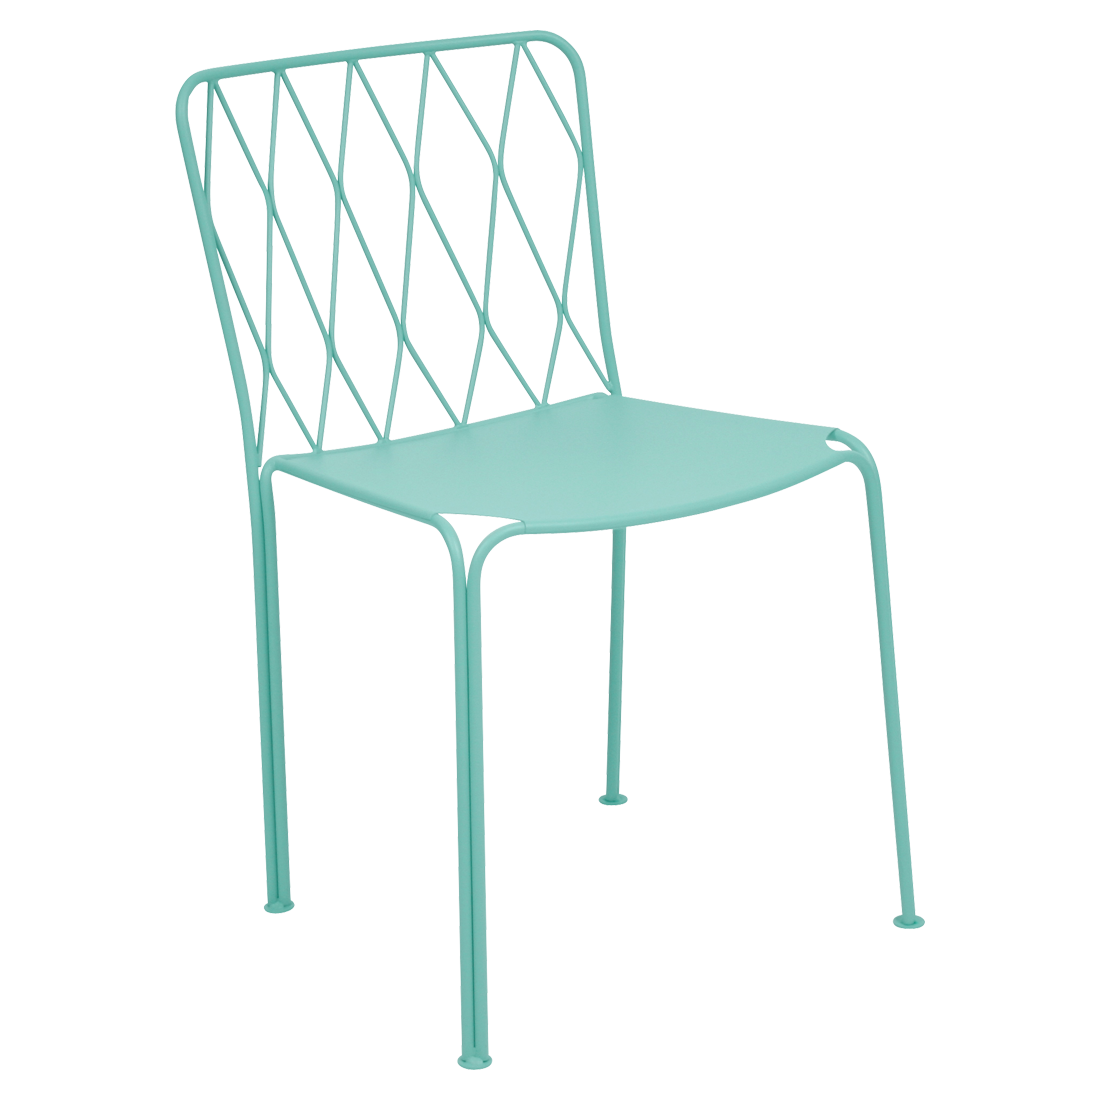 Kintbury chair metal chair outdoor furniture - Chaises en polycarbonate transparent ...